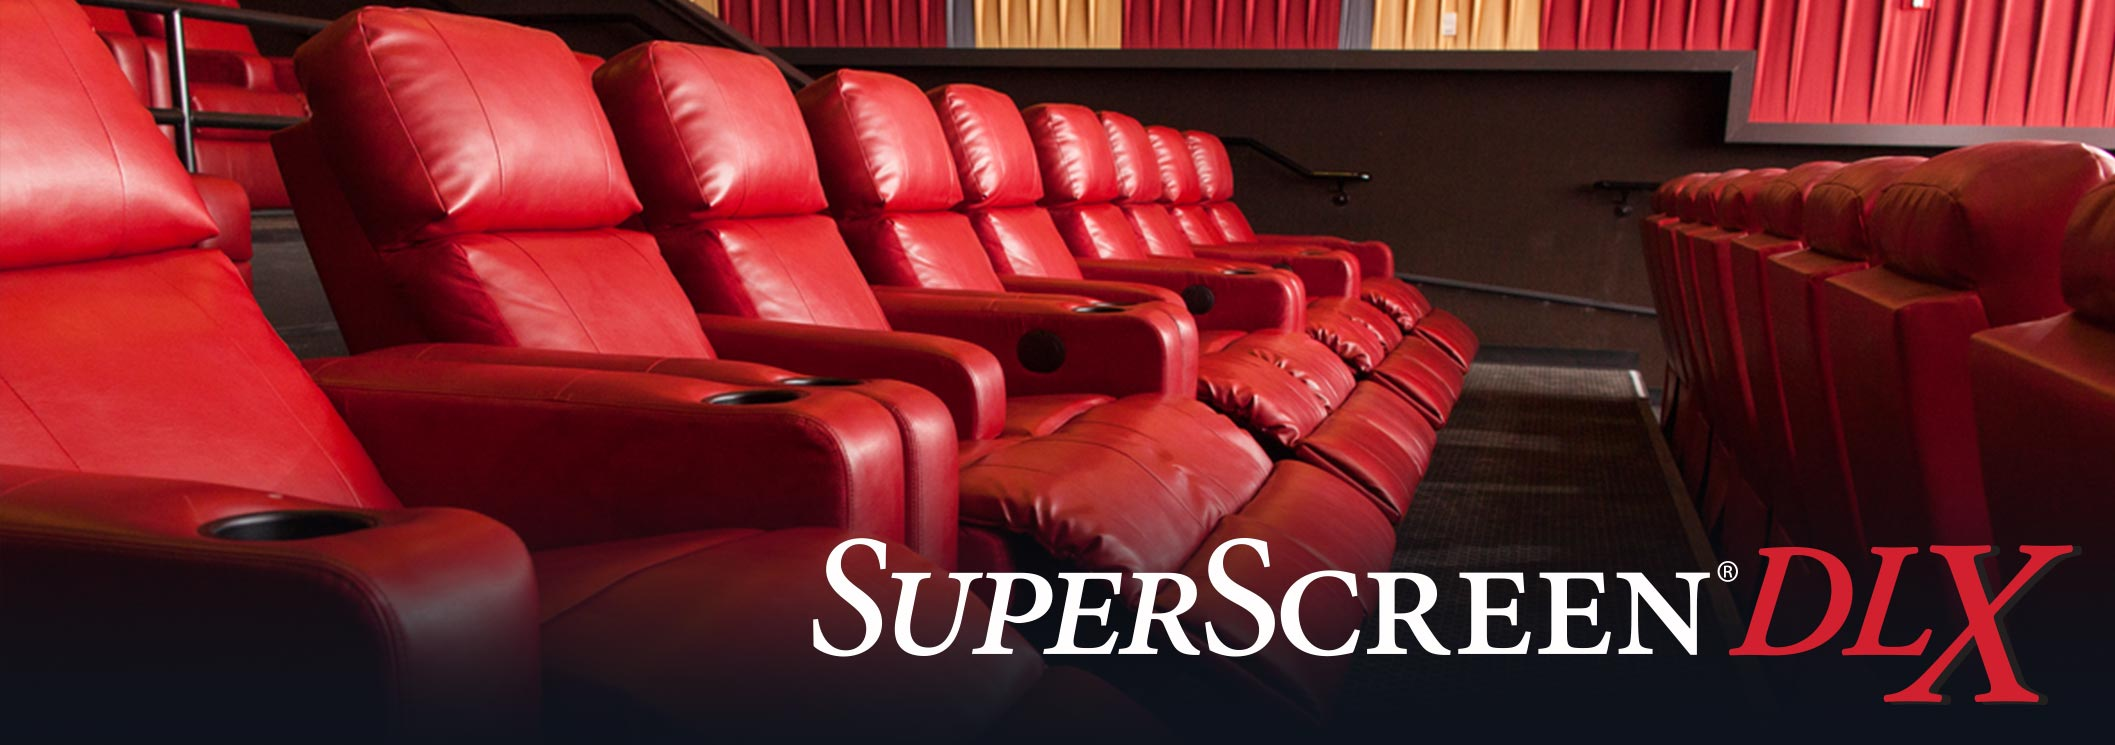 Reclining Chair Movie Theater Superscreen Dlx Marcus Theatres